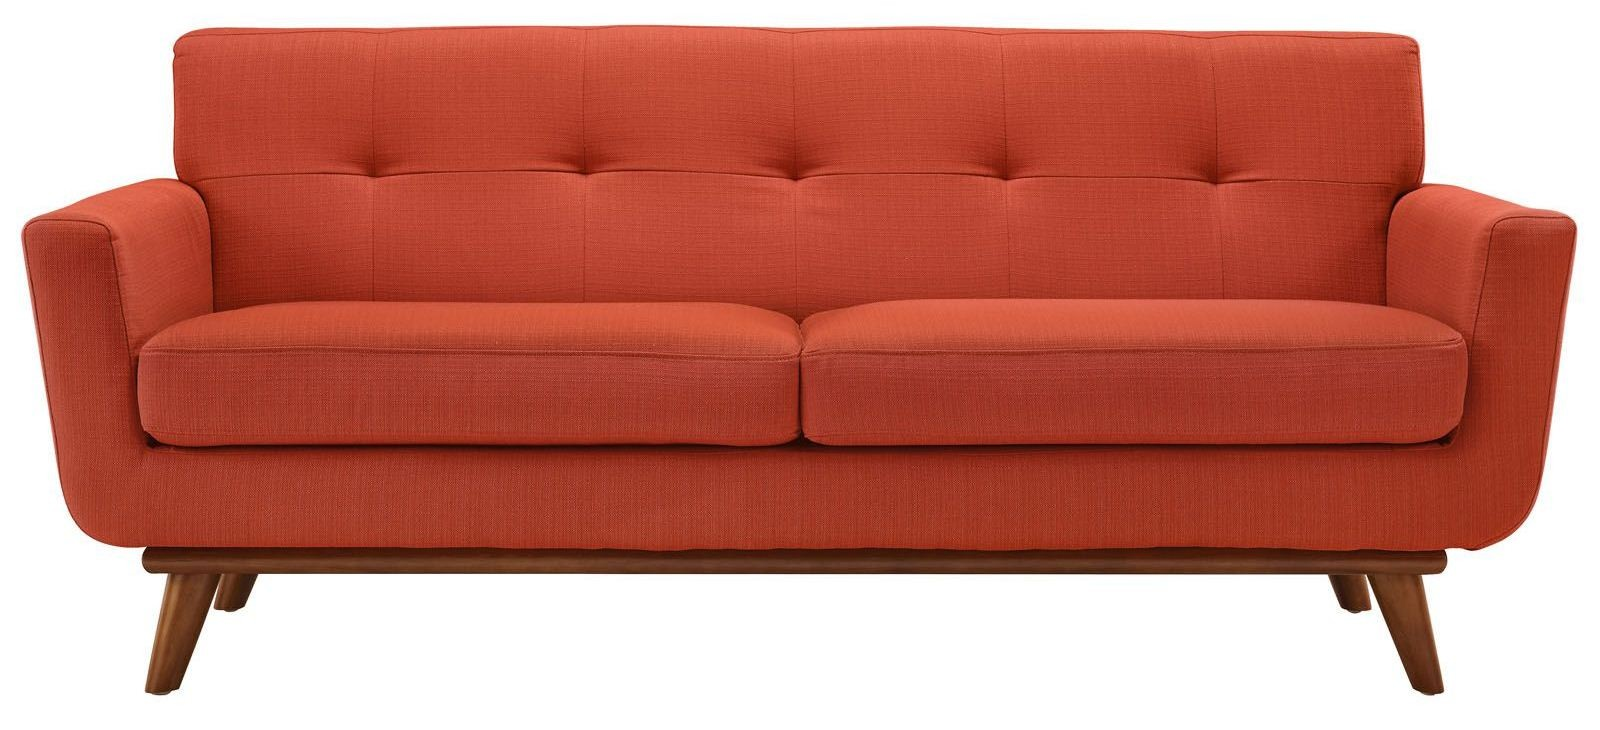 Engage Atomic Red Upholstered Loveseat From Renegade Eei 1179 Coleman Furniture